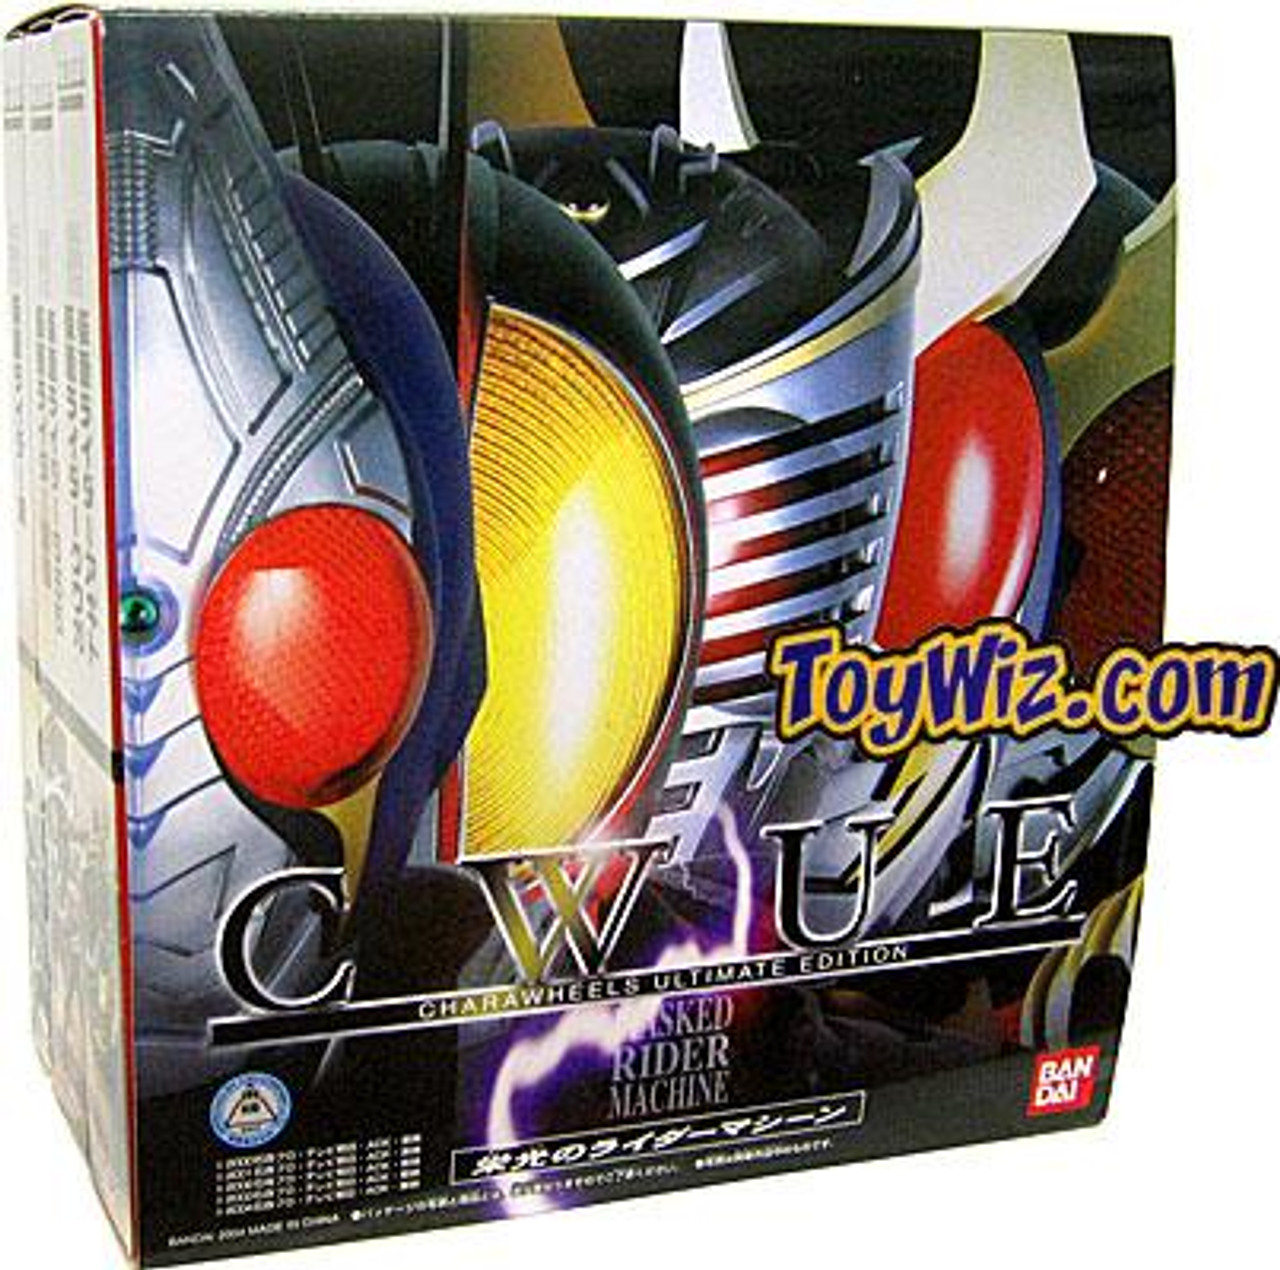 Soul of Chogokin CWUE Charawheels Ultimate Editon Masked Rider Machine